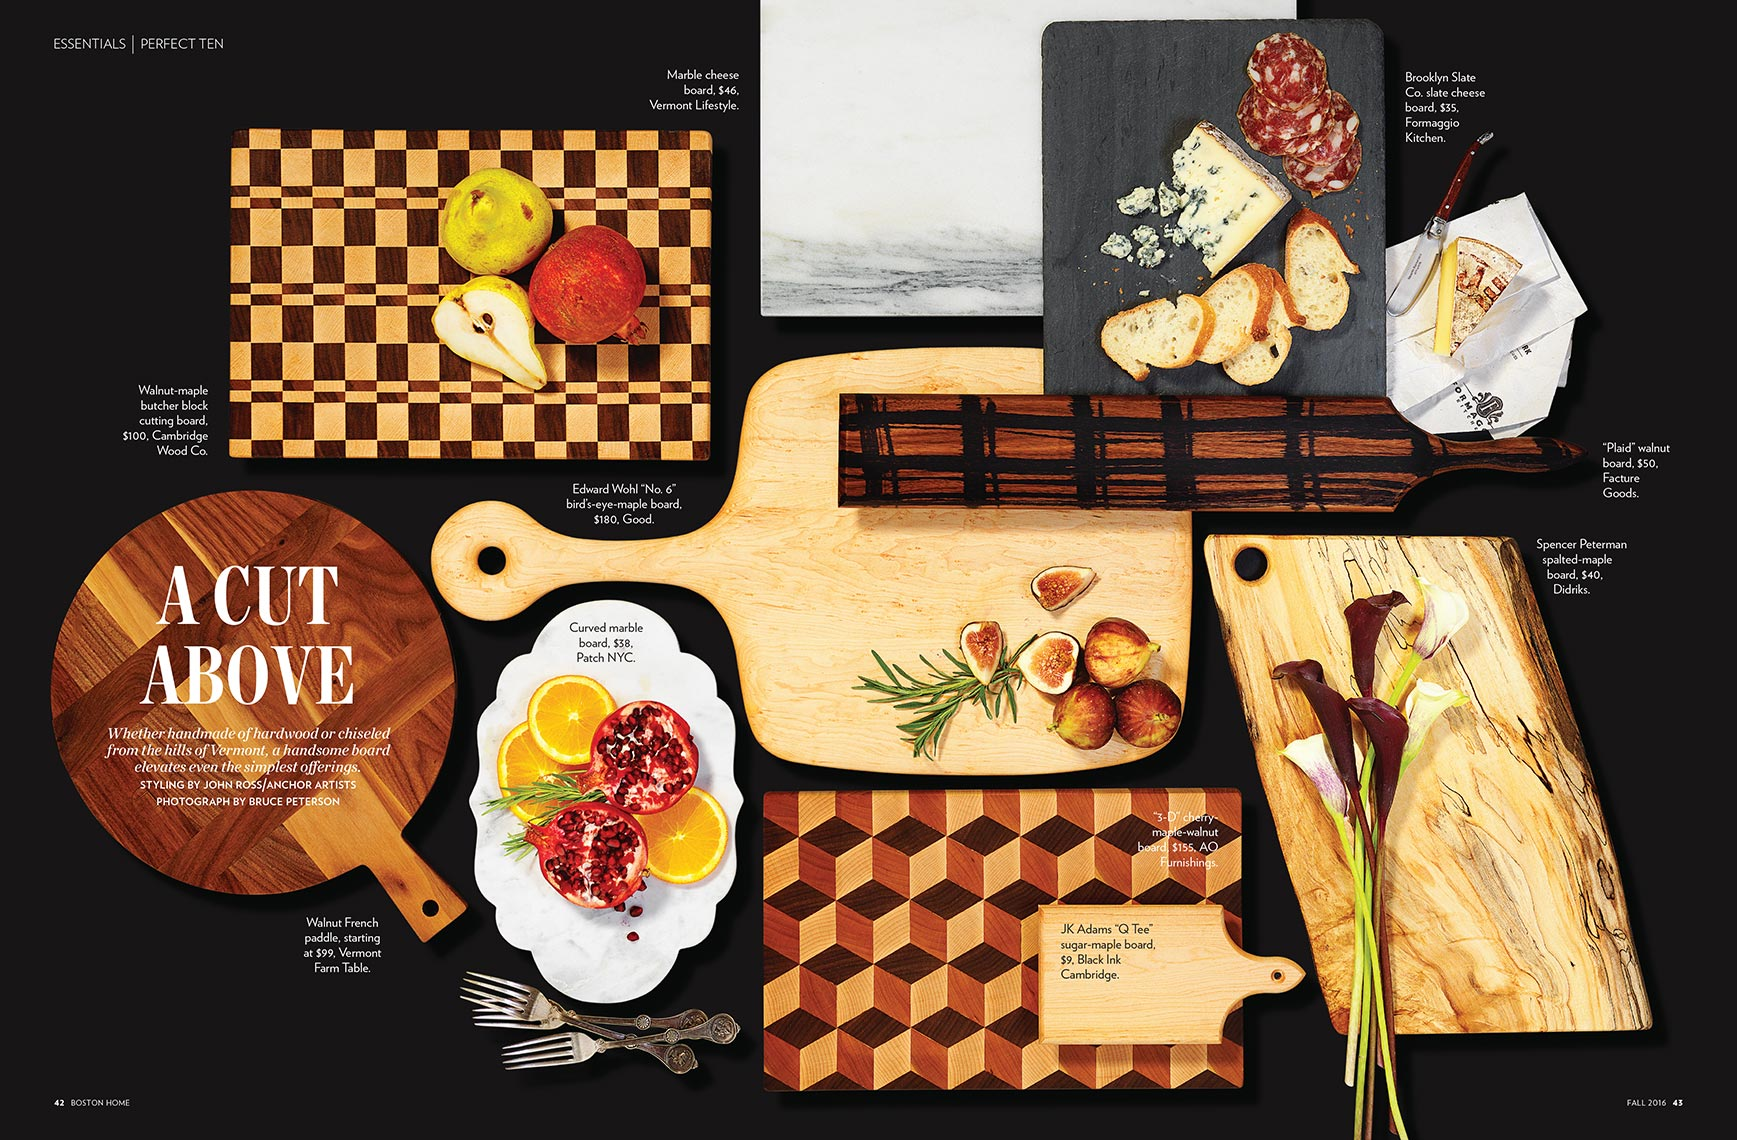 el-bhm-home_perfect10cuttingboards